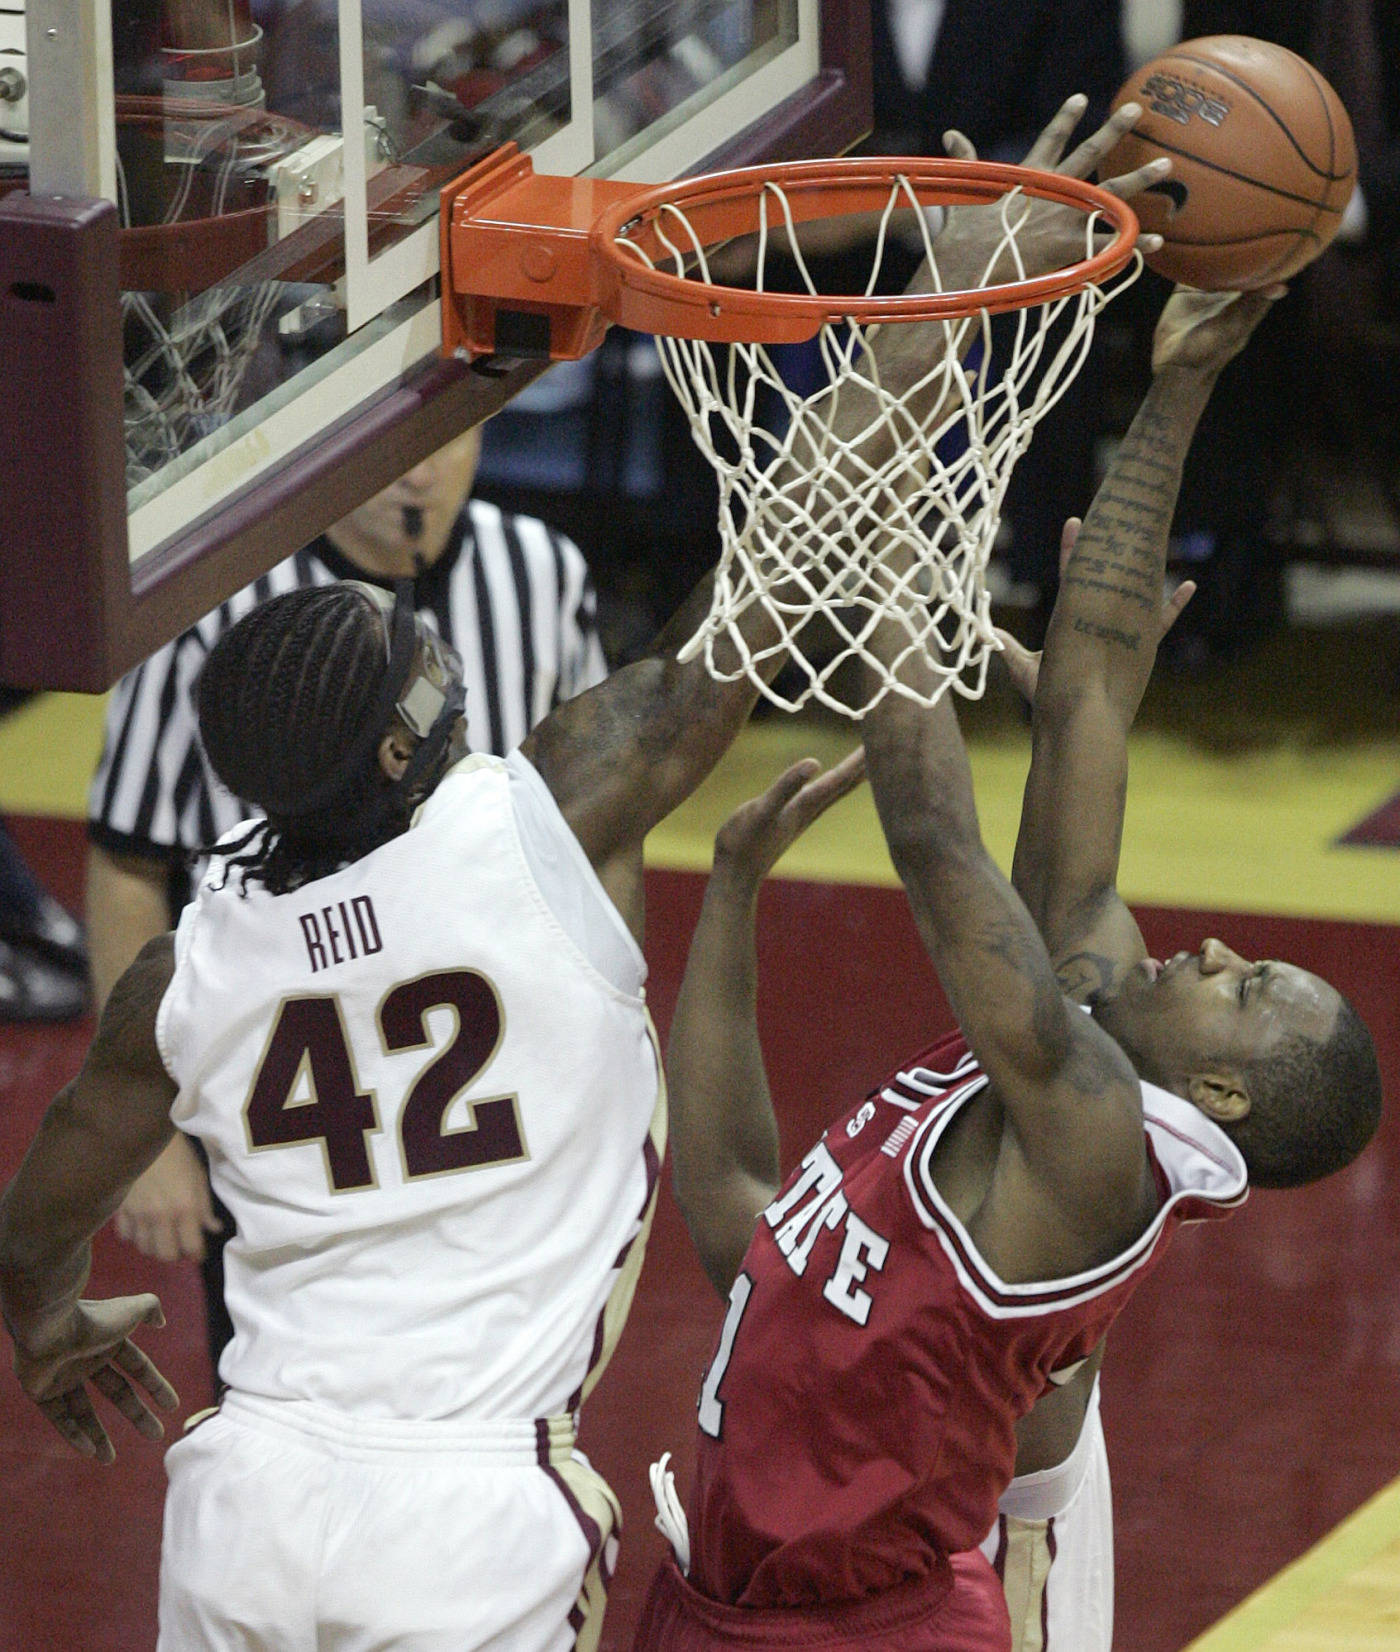 Florida State's Ryan Reid, left, blocks the shot of North Carolina State's Gavin Grant in the second half of a college basketball game Saturday, Jan. 26, 2008 in Tallahassee, Fla.